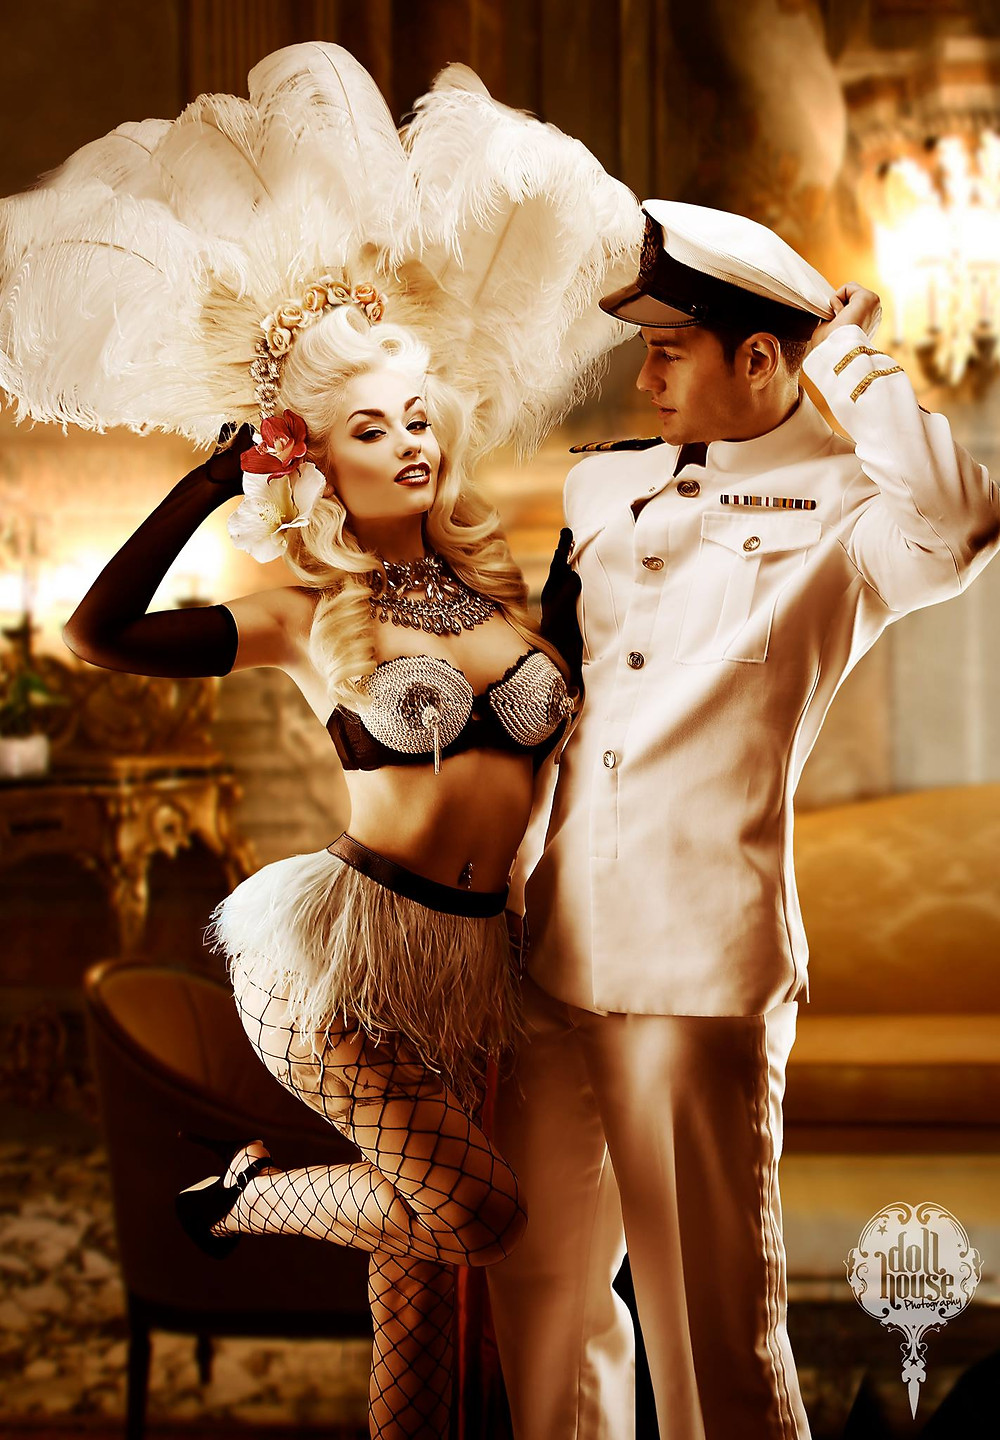 Couple Pinup Photo Shoots by DollHouse Photography with Romanie Smith